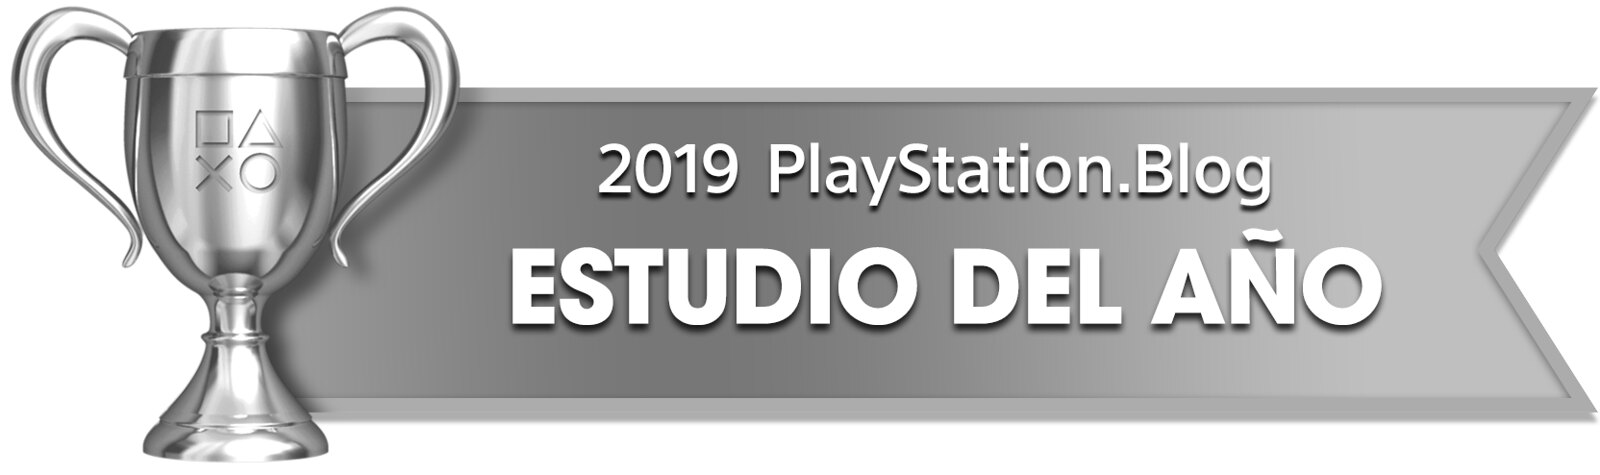 PS Blog Game of the Year 2019 - Studio of the Year - 3 - Silver